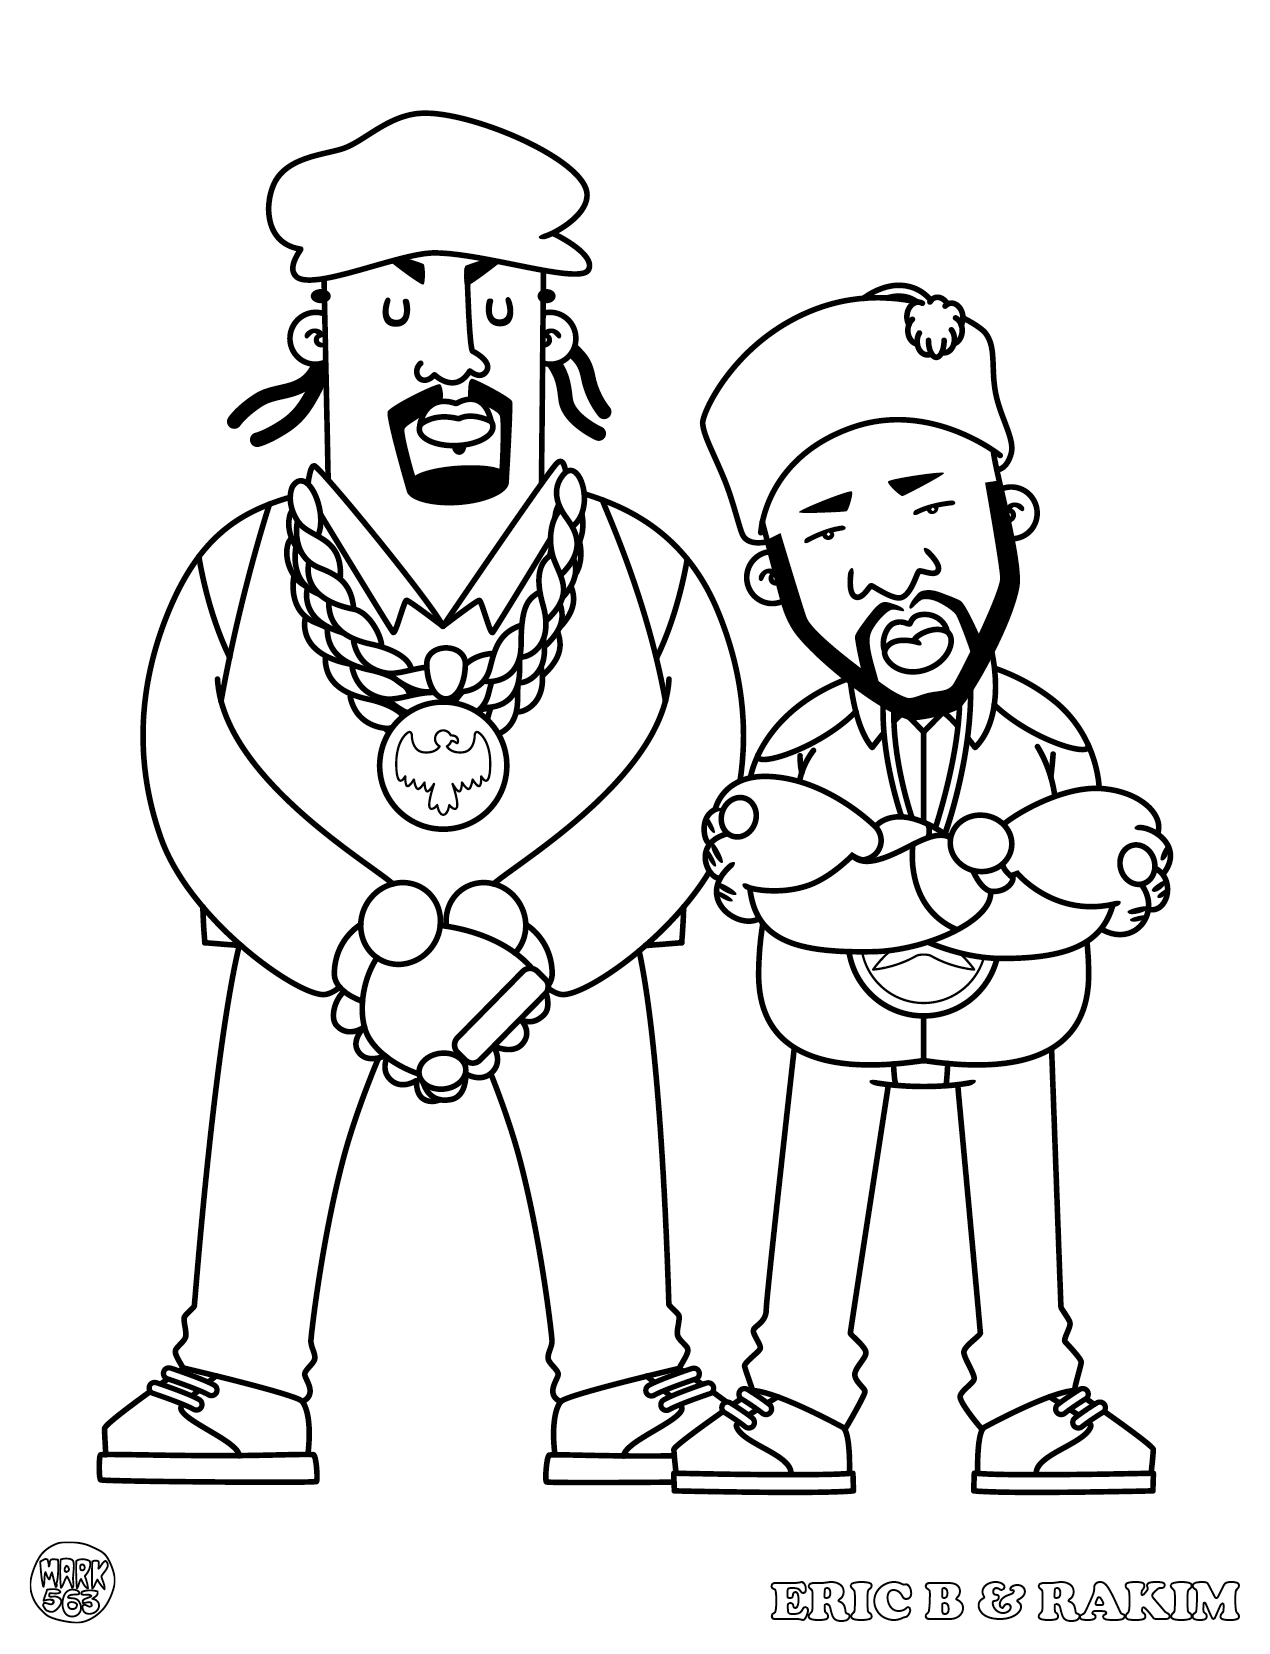 coloring pages urban art - photo#10